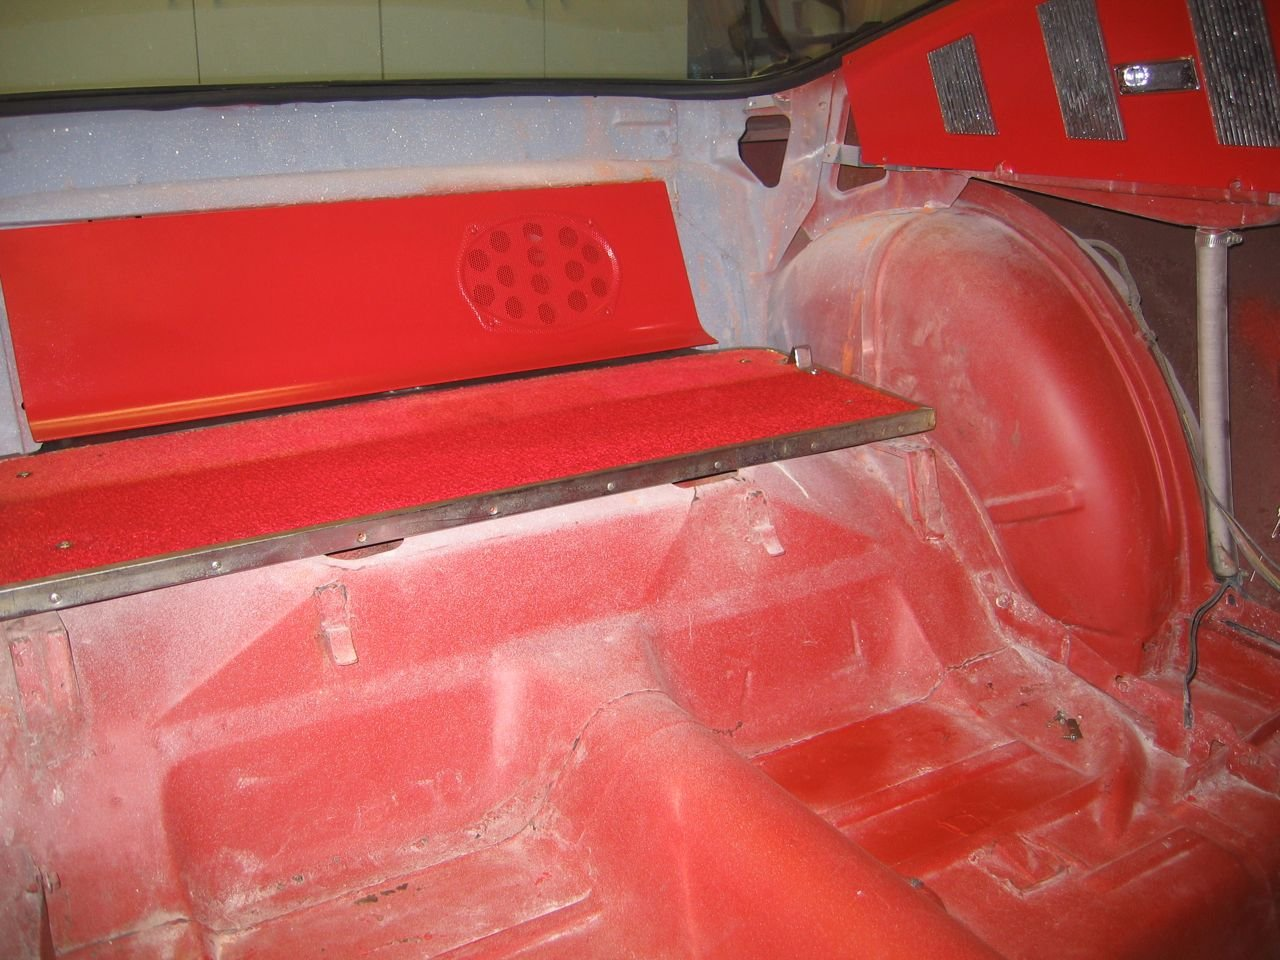 1966 Mustang Convertible Wiring Diagram 1967 Fastback Help With The Folddown Seat Ford Mustang